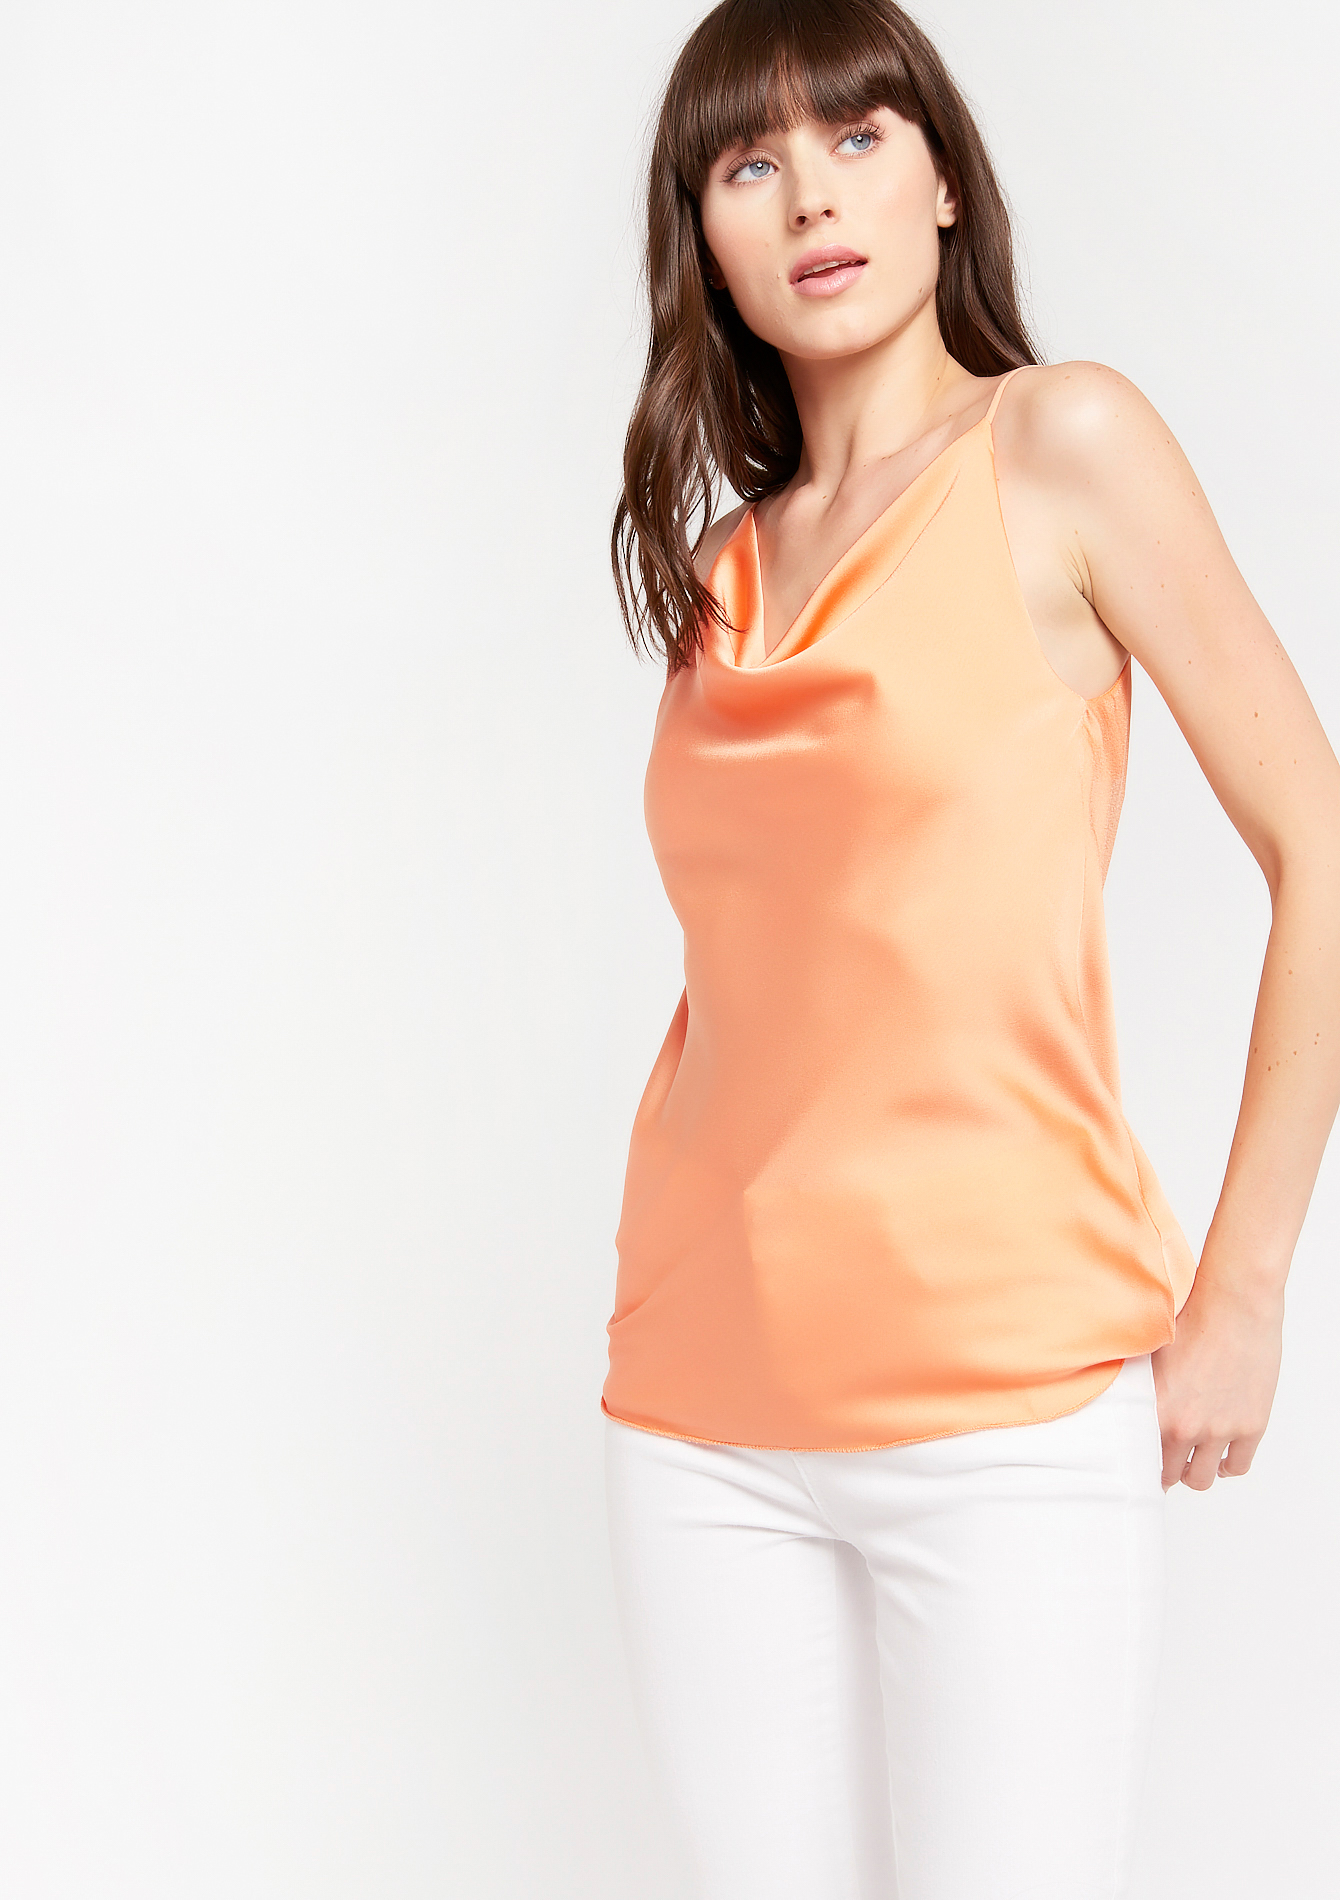 Top en satin à bretelles fines - PEACHY PINK - 05701441_1335